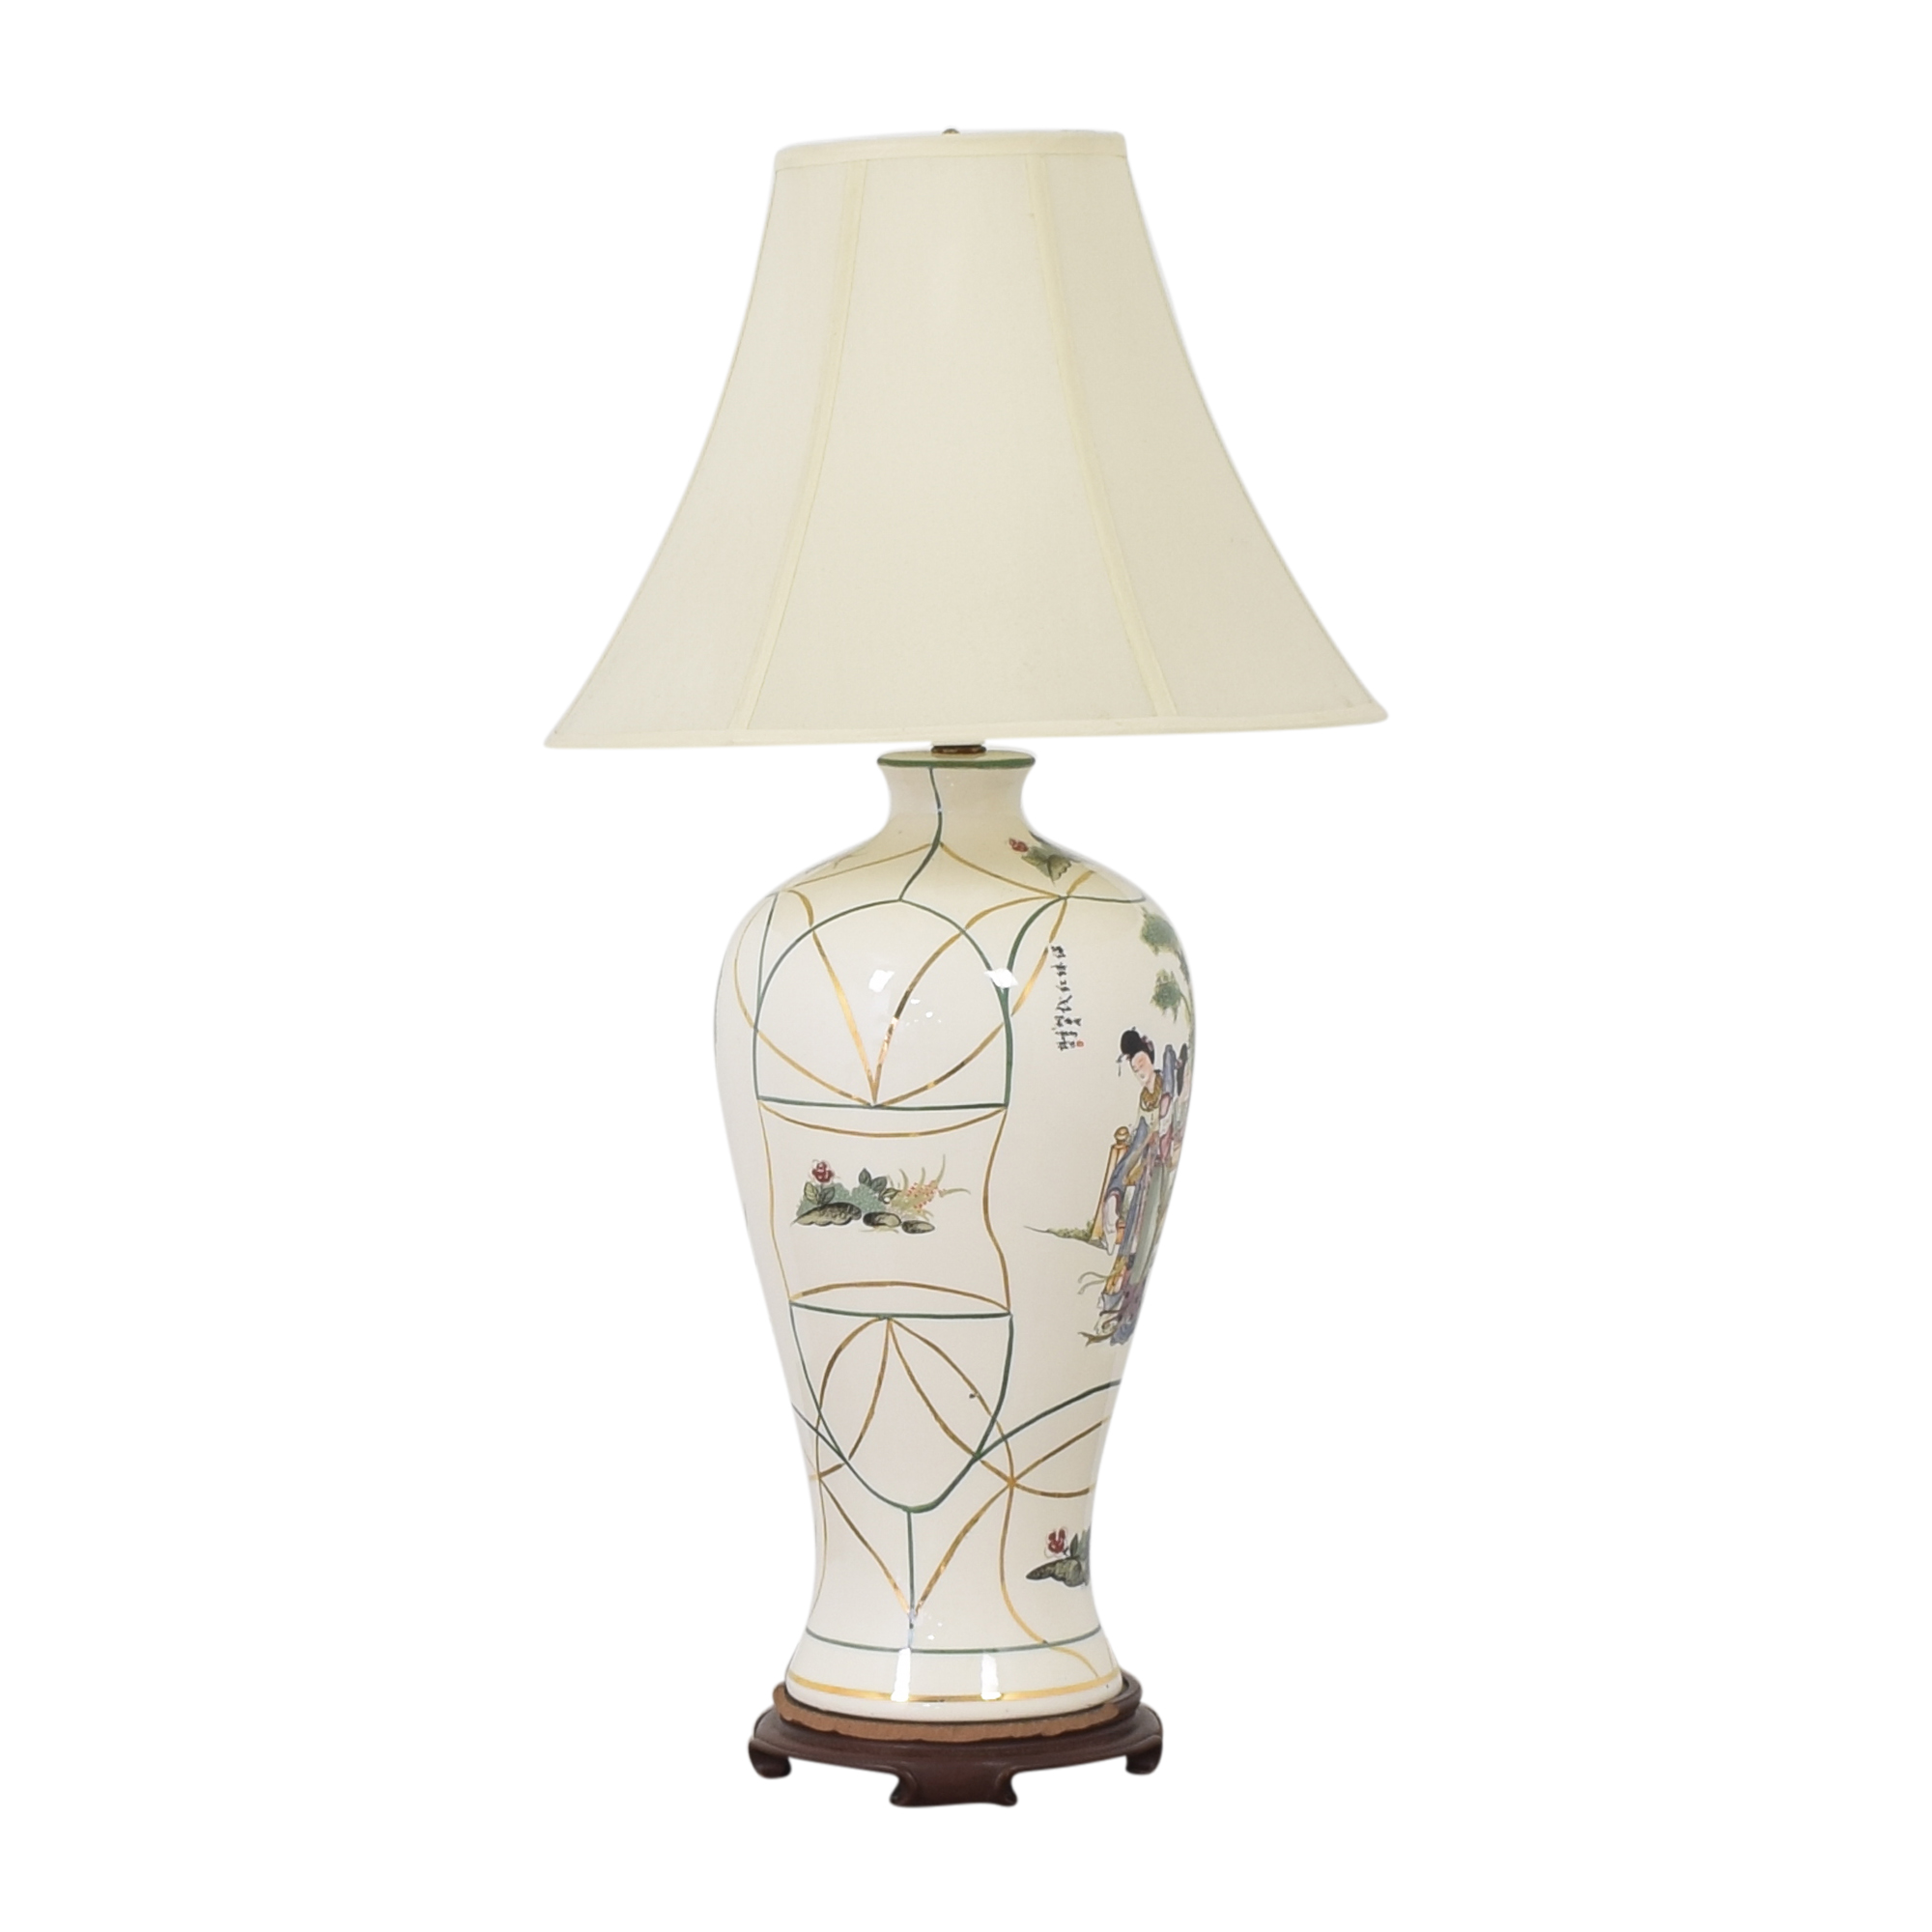 Vase-Style Table Lamp dimensions